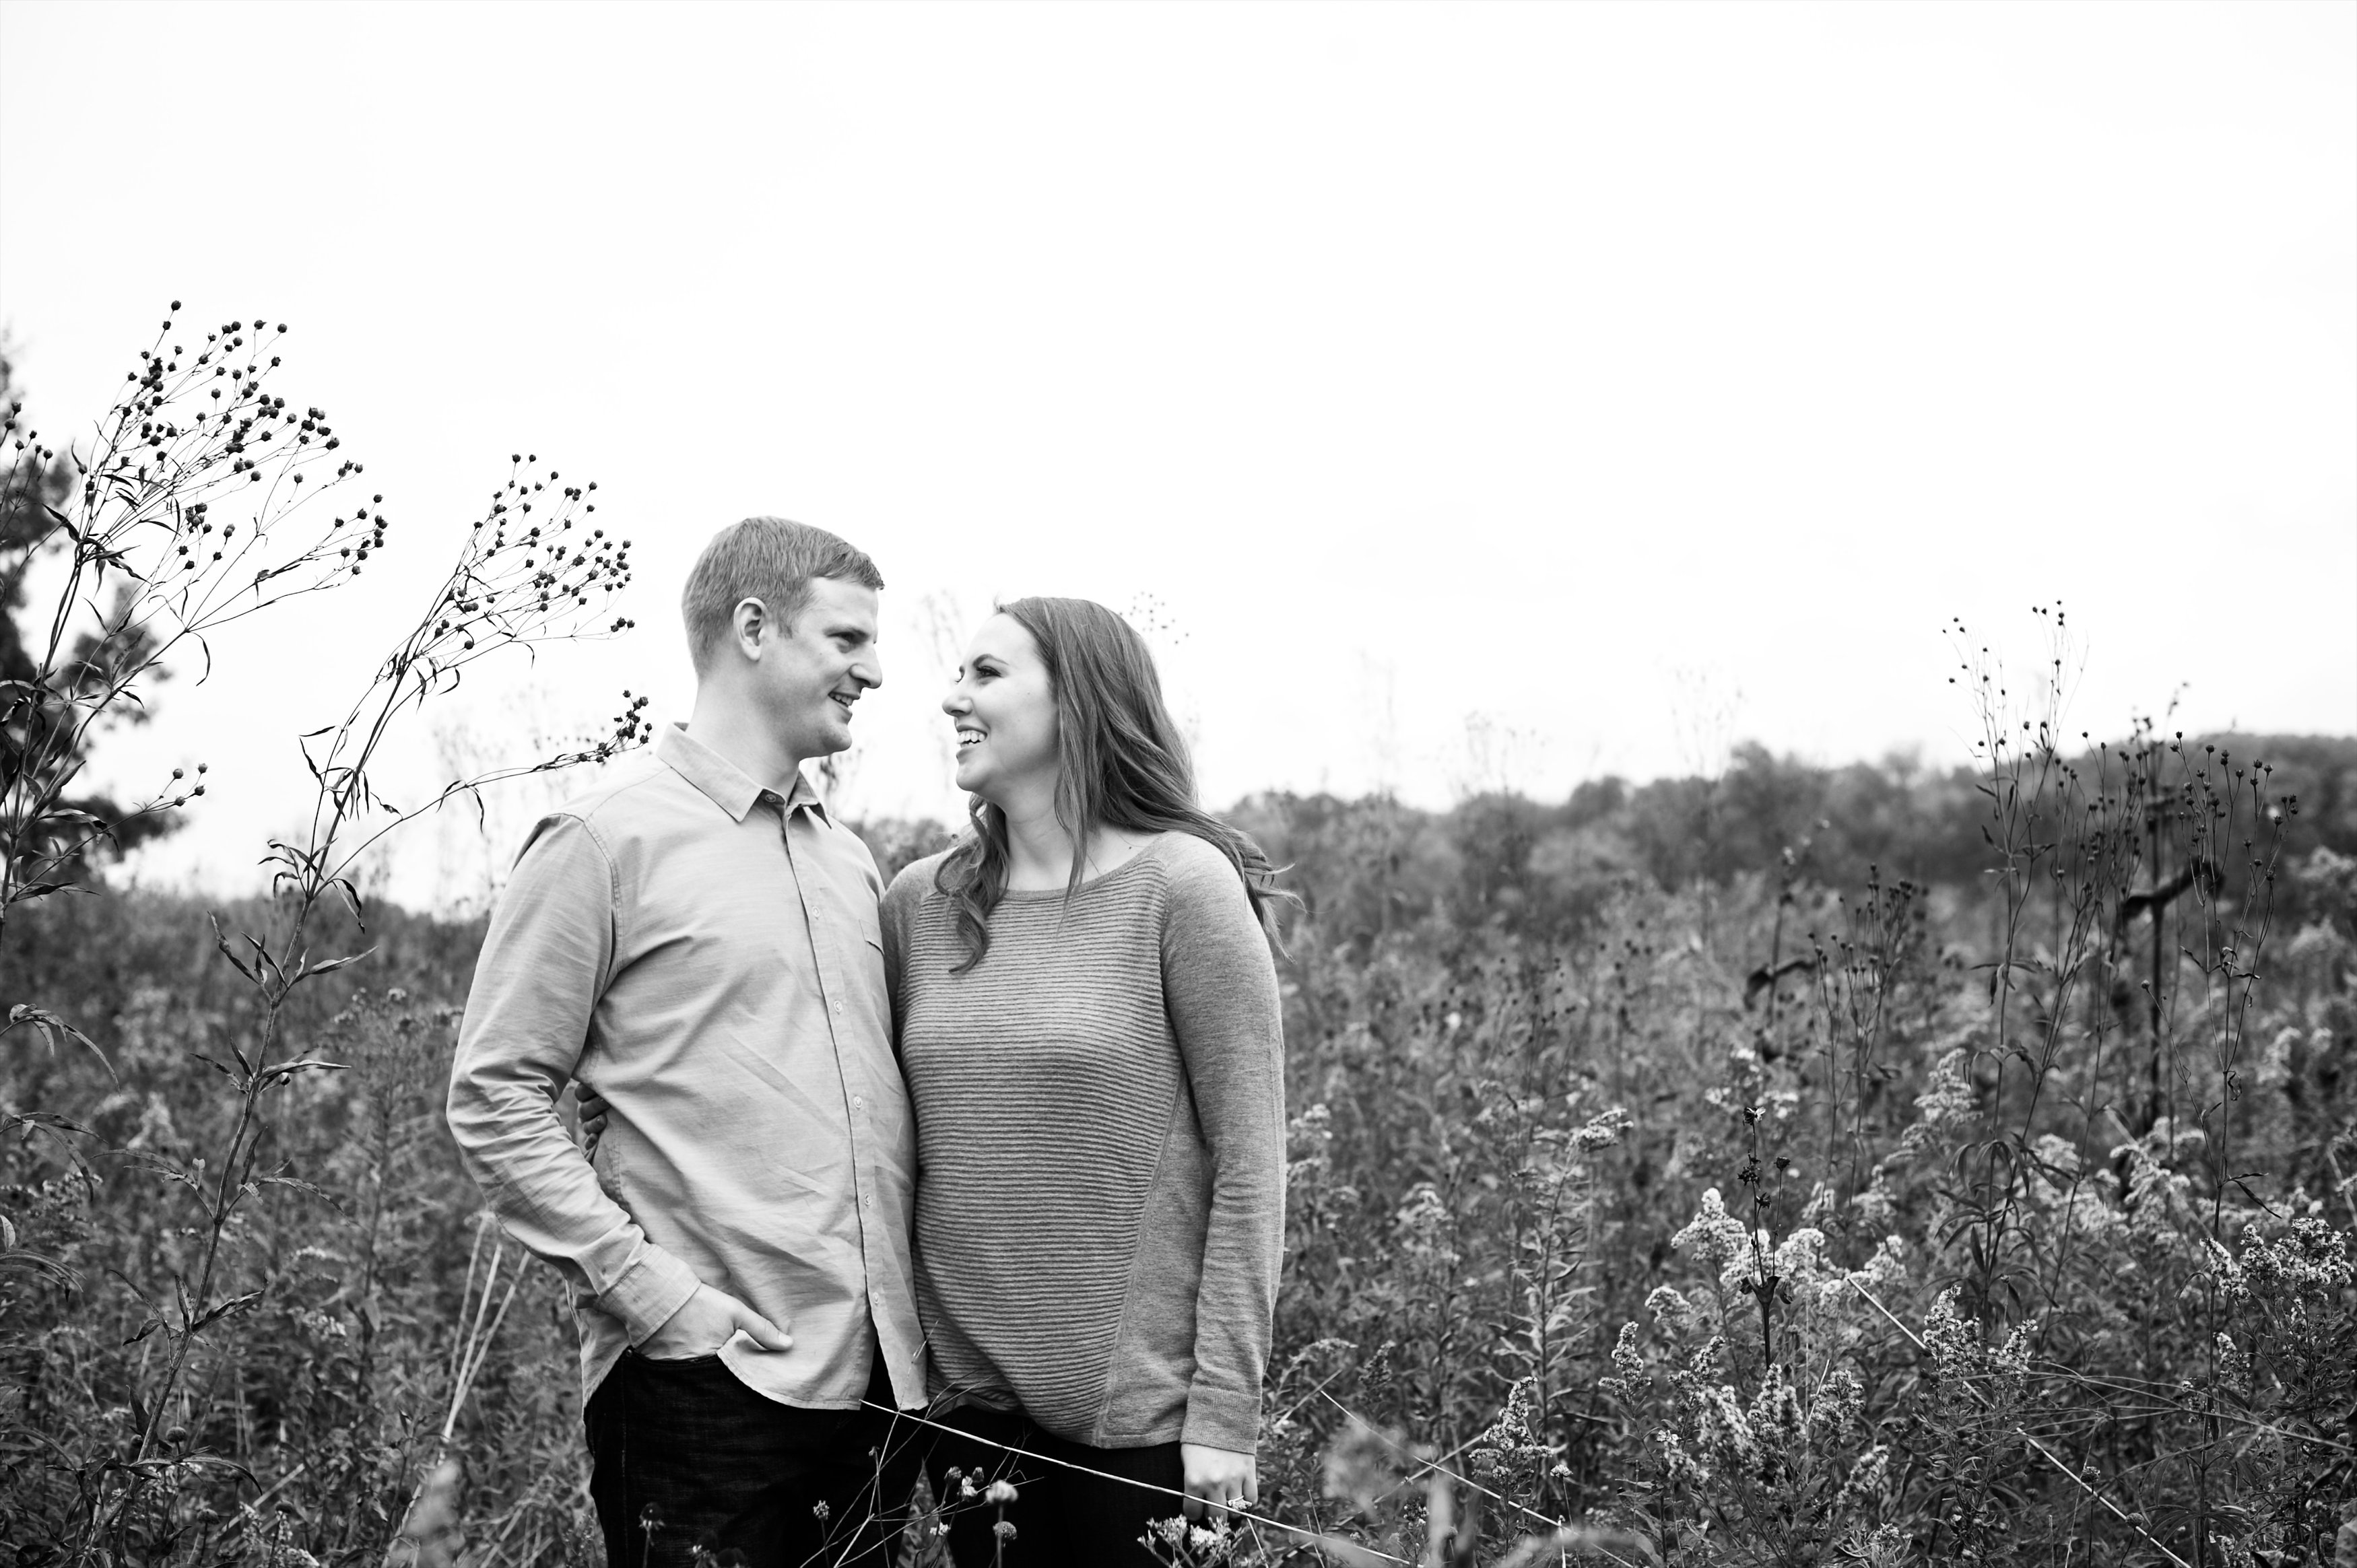 We couldn't be more happy with our gorgeous engagement photos by Beale and Wittig! These are perfect fall engagement photos with the fall colors looking so beautiful. Check them out for some engagement photo ideas!